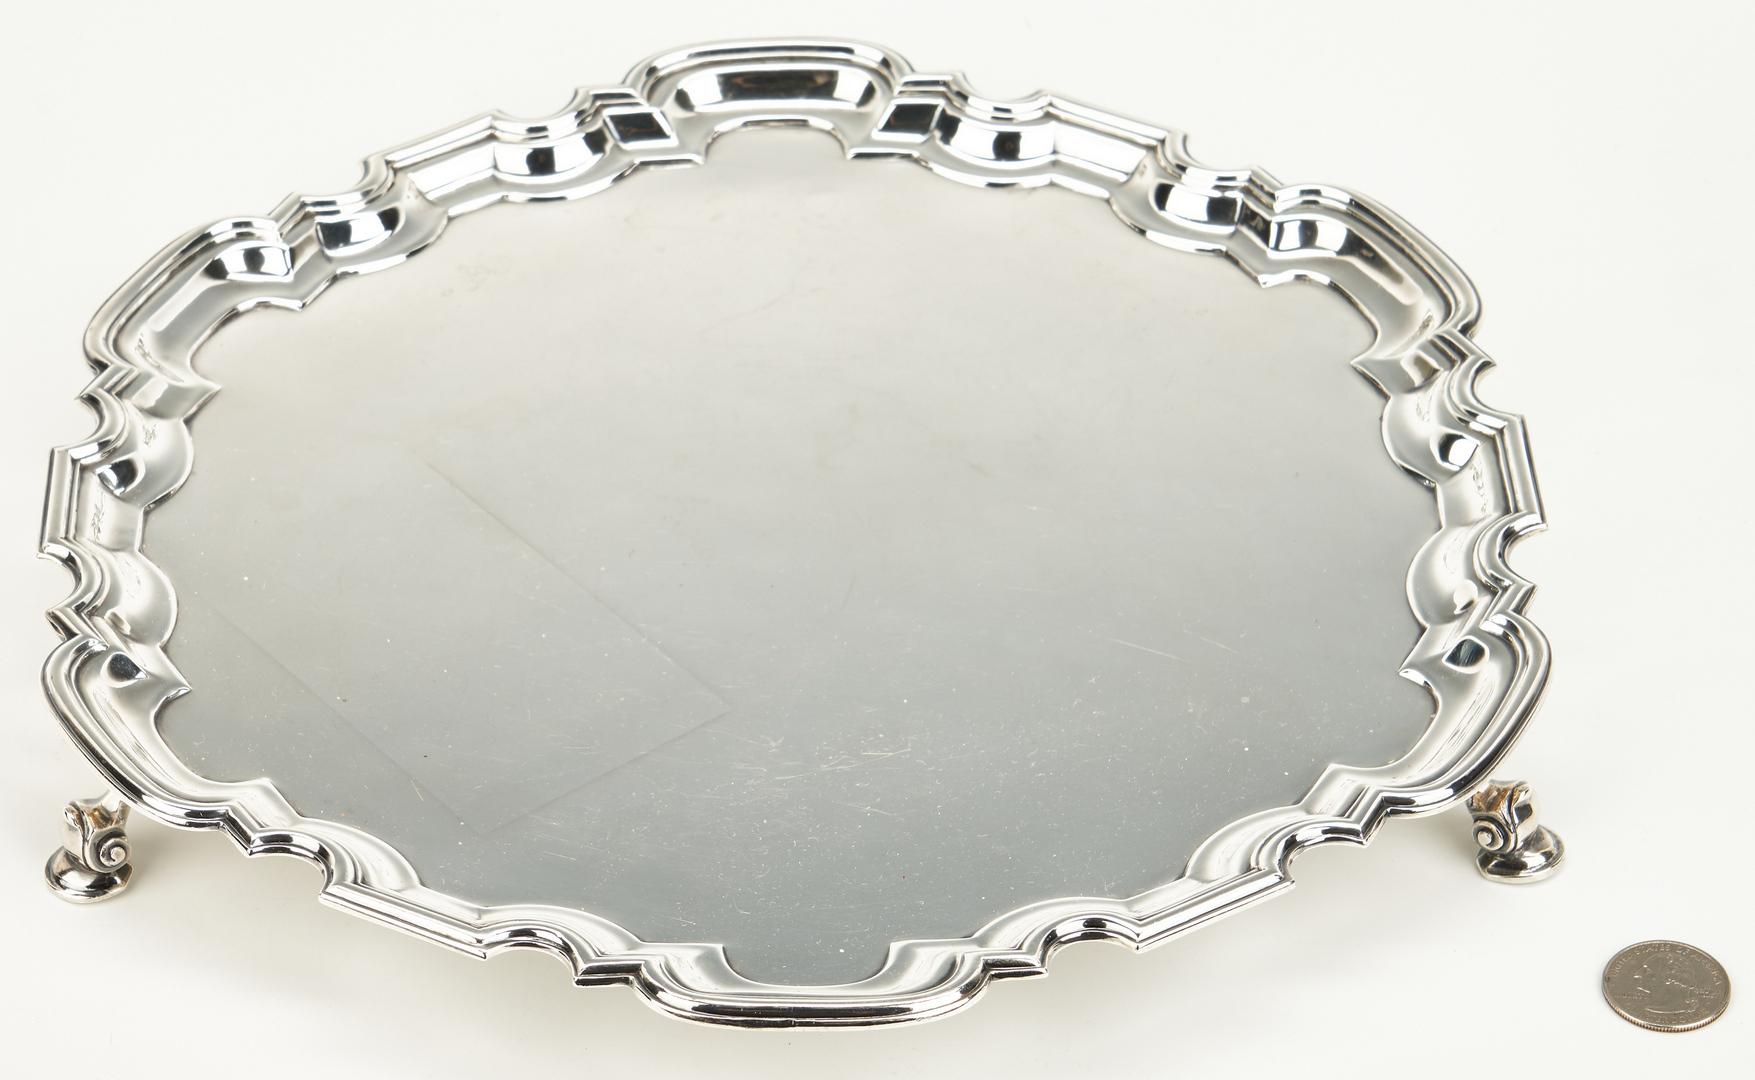 Lot 71: Scottish Sterling Silver Tray or Salver